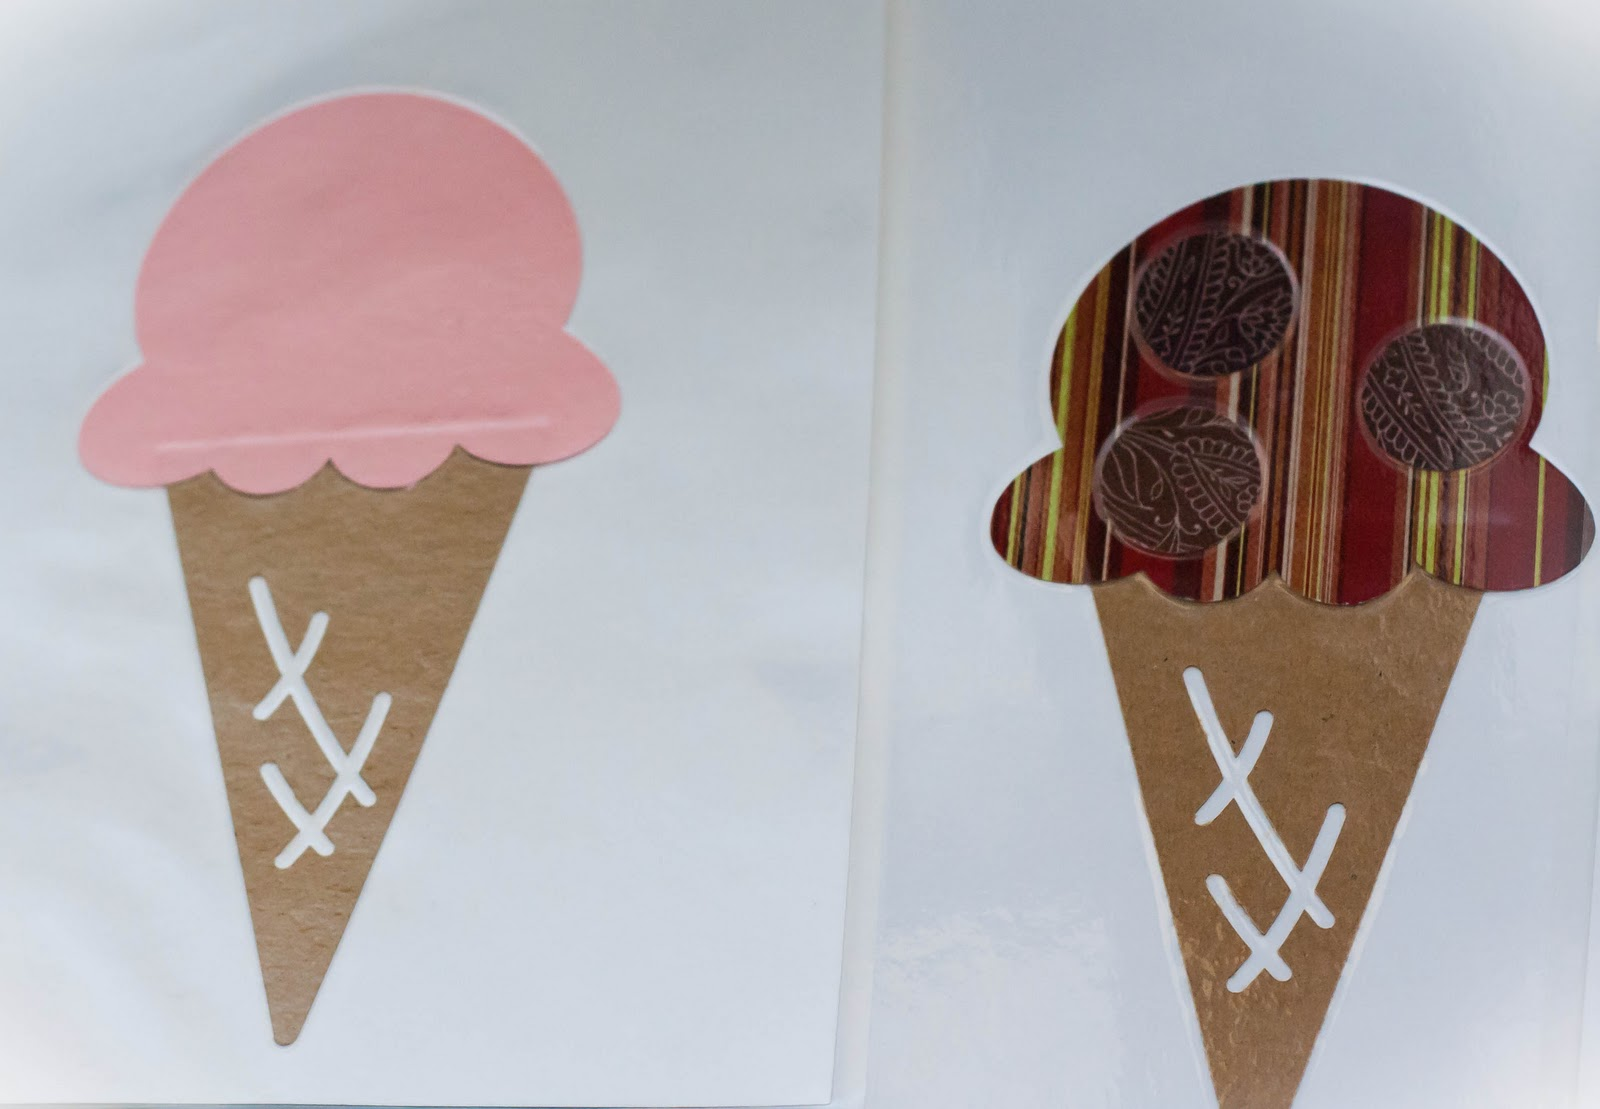 Ice cream party games and activities my insanity i used my other craft punches to make extra shapes to designate the various flavors of ice cream and then had them all laminated ccuart Image collections